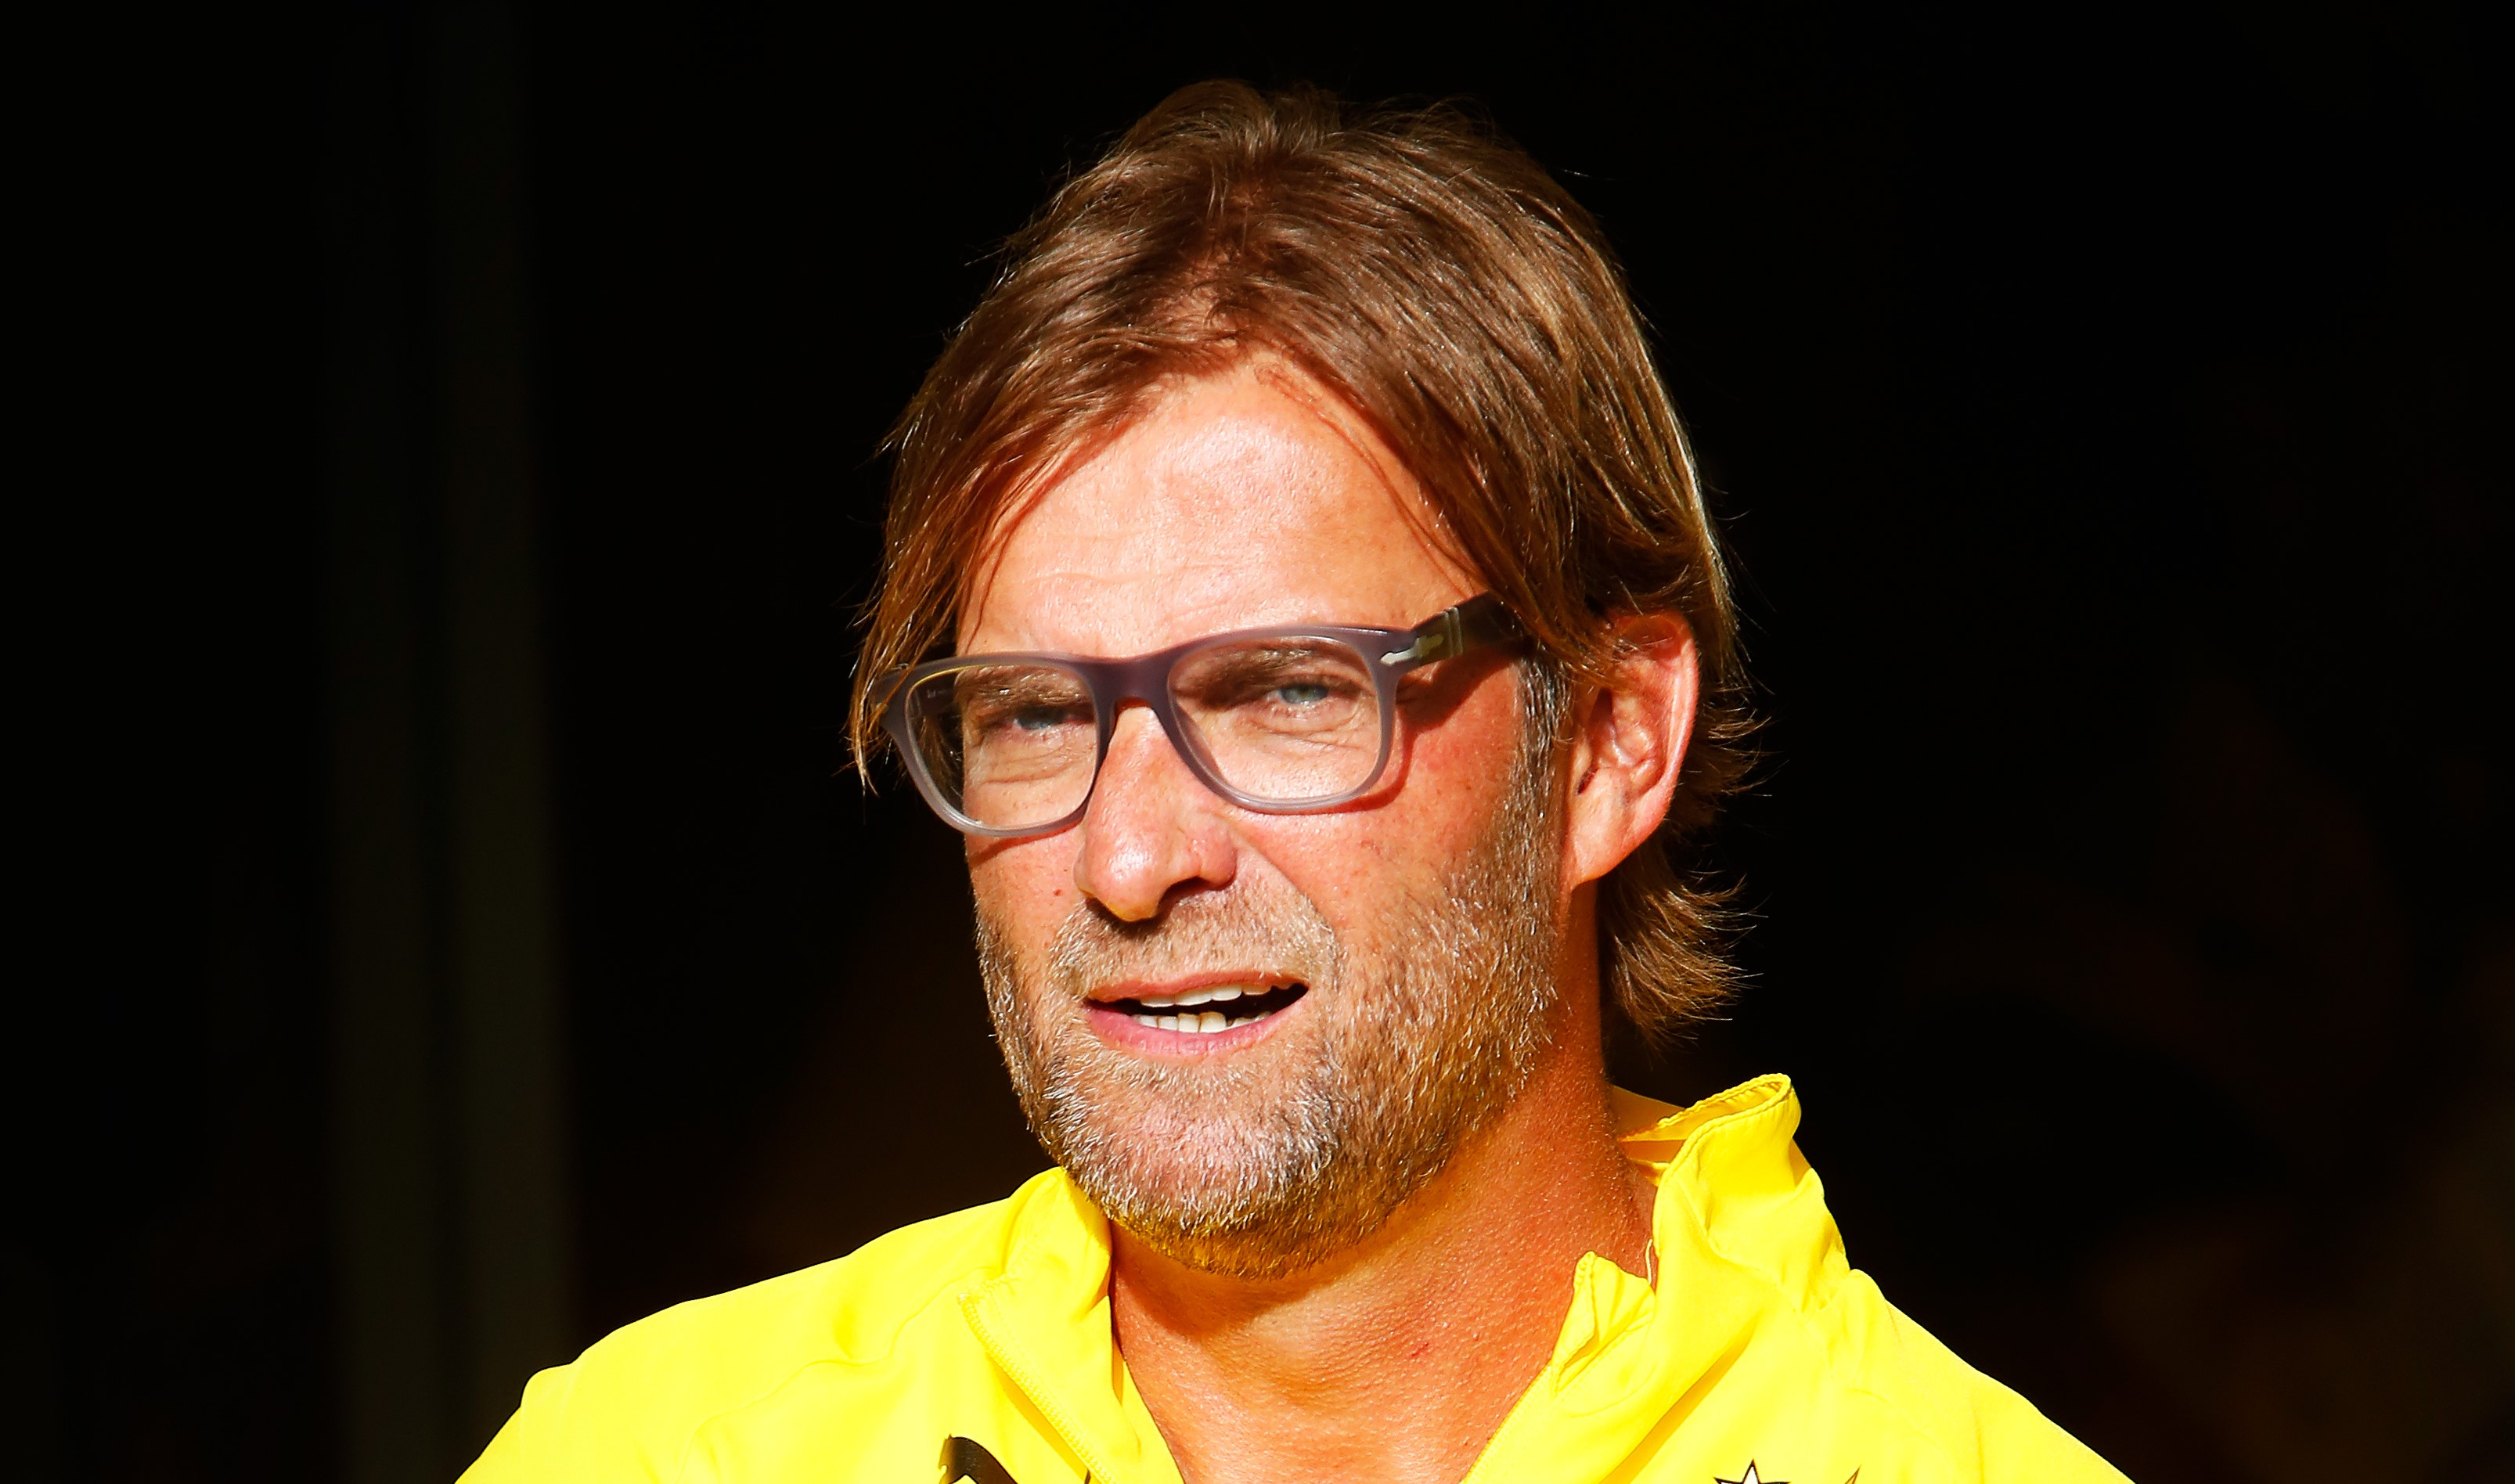 Klopp: Pep always looks perfect, but when I shout, I look like a serial killer